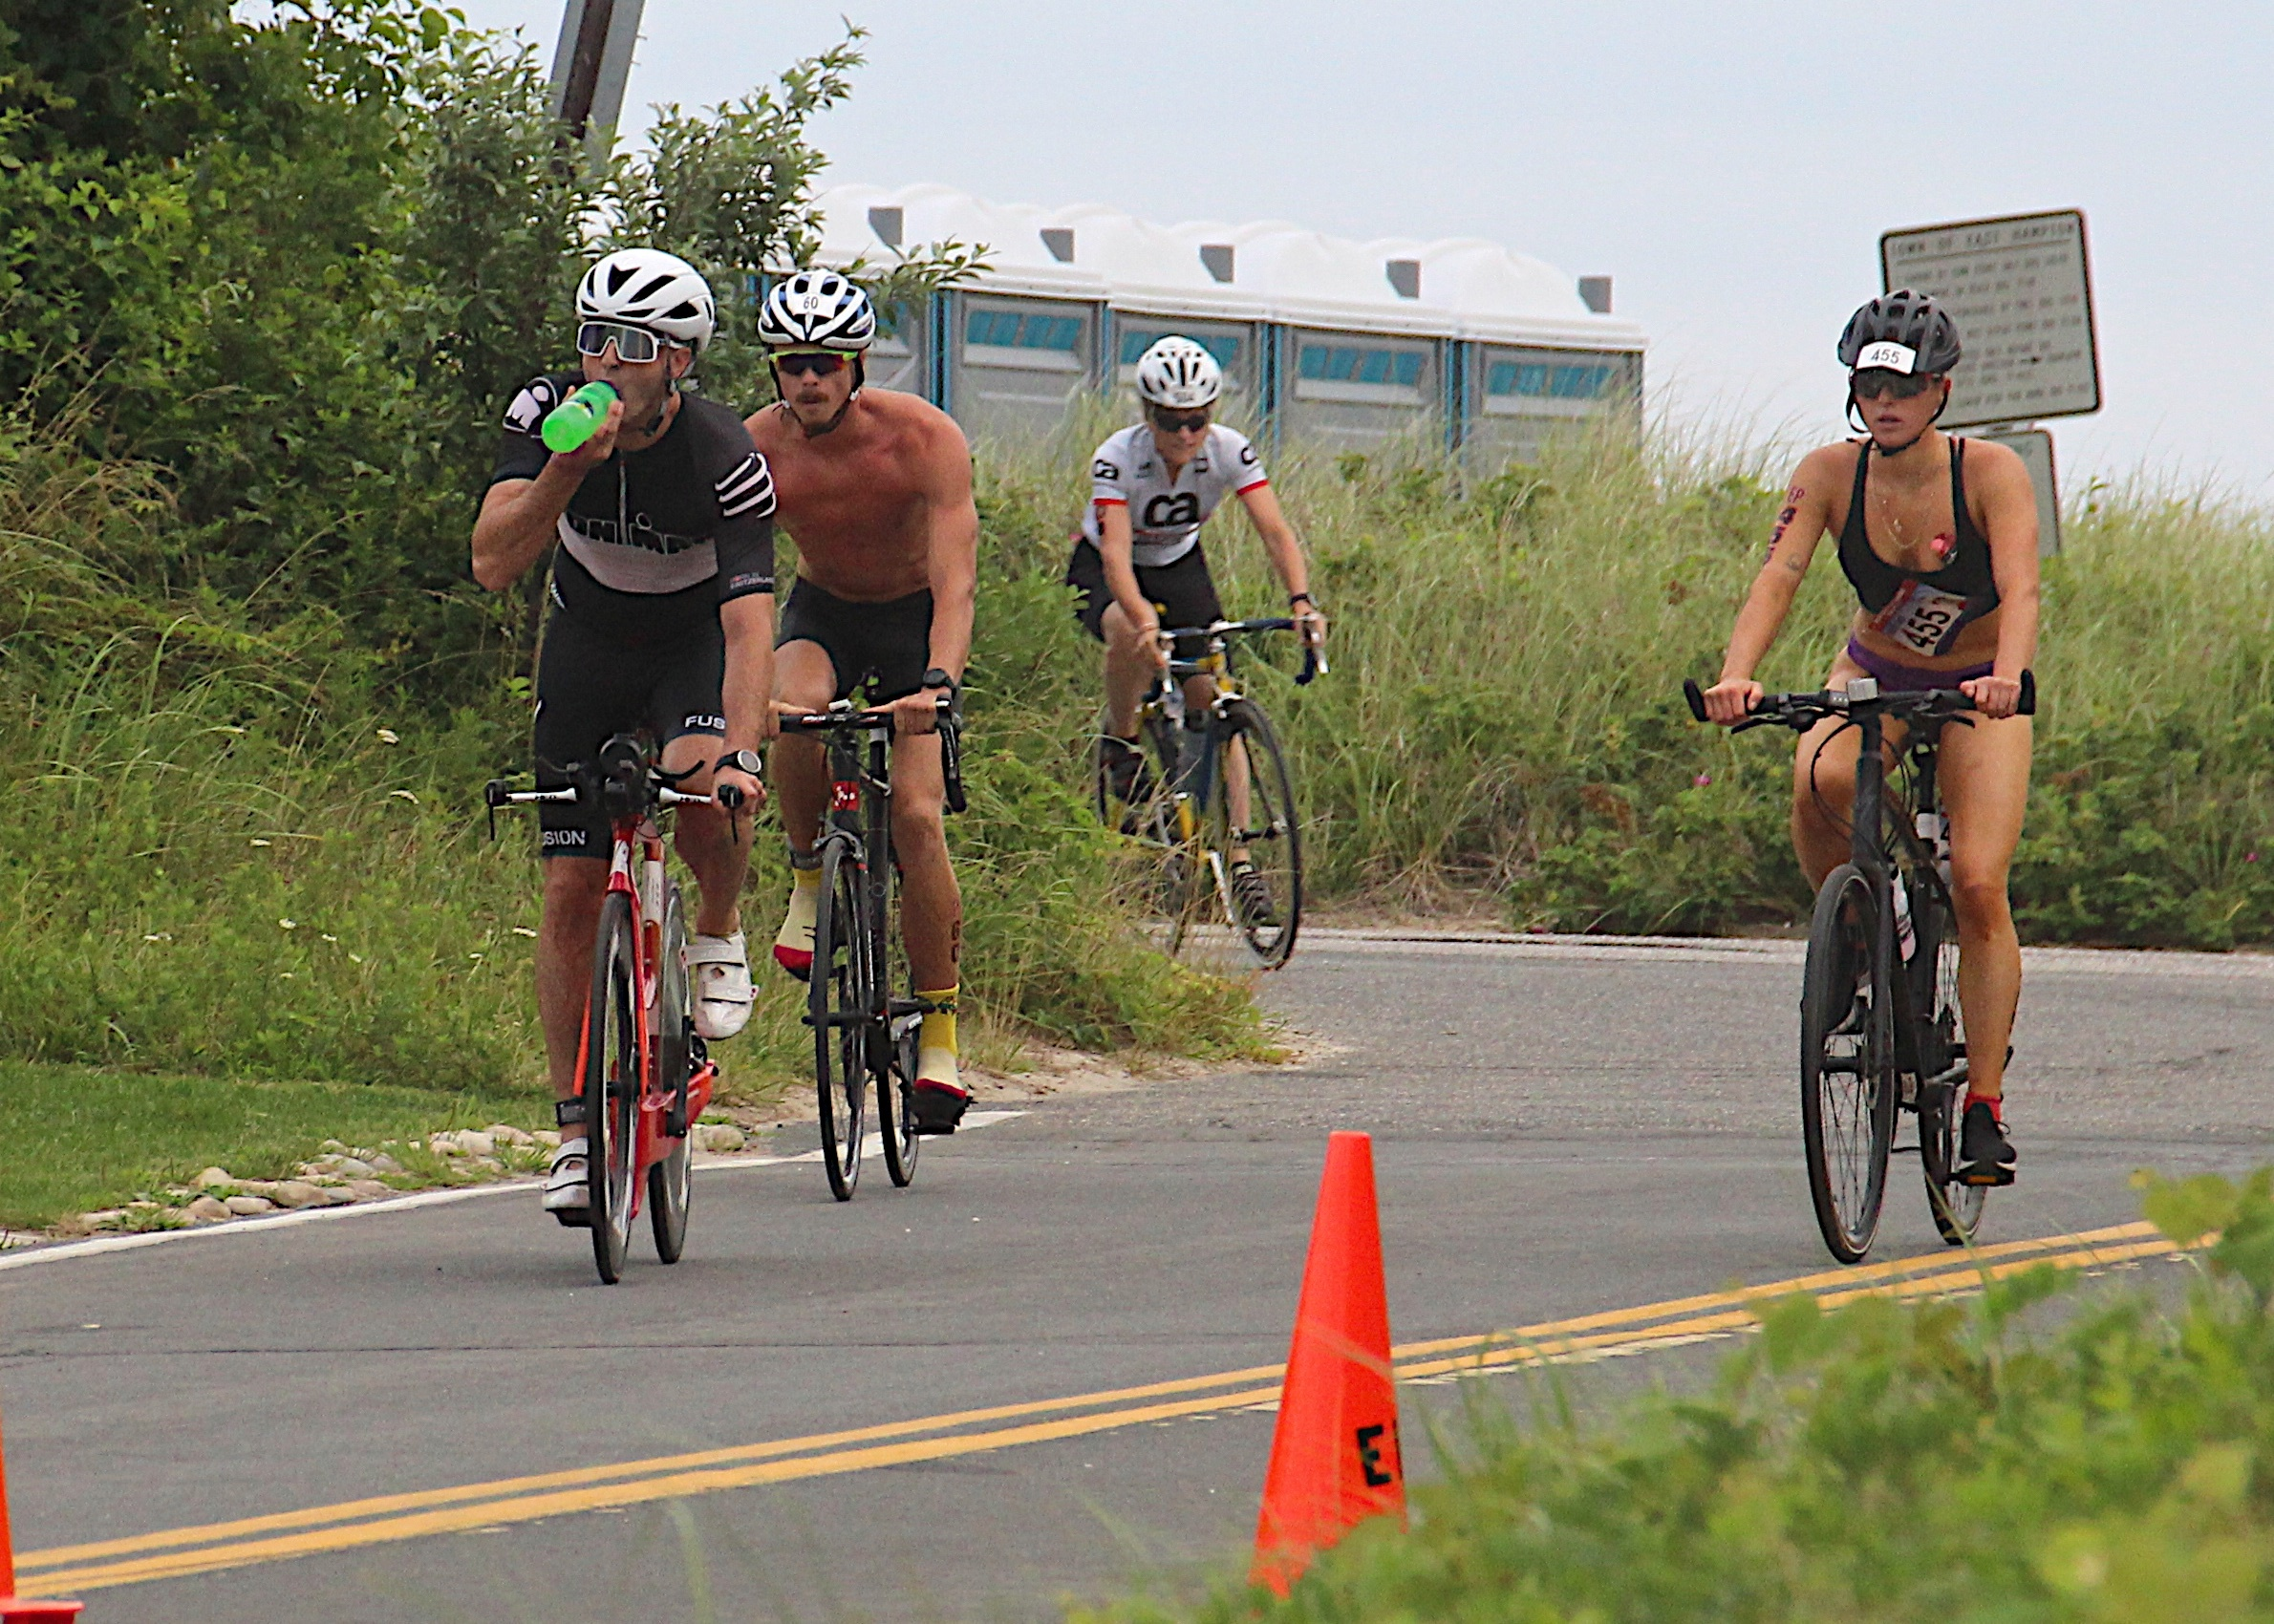 Triathletes in the cycling portion of the Montauk Lighthouse Triathlon on Sunday morning.